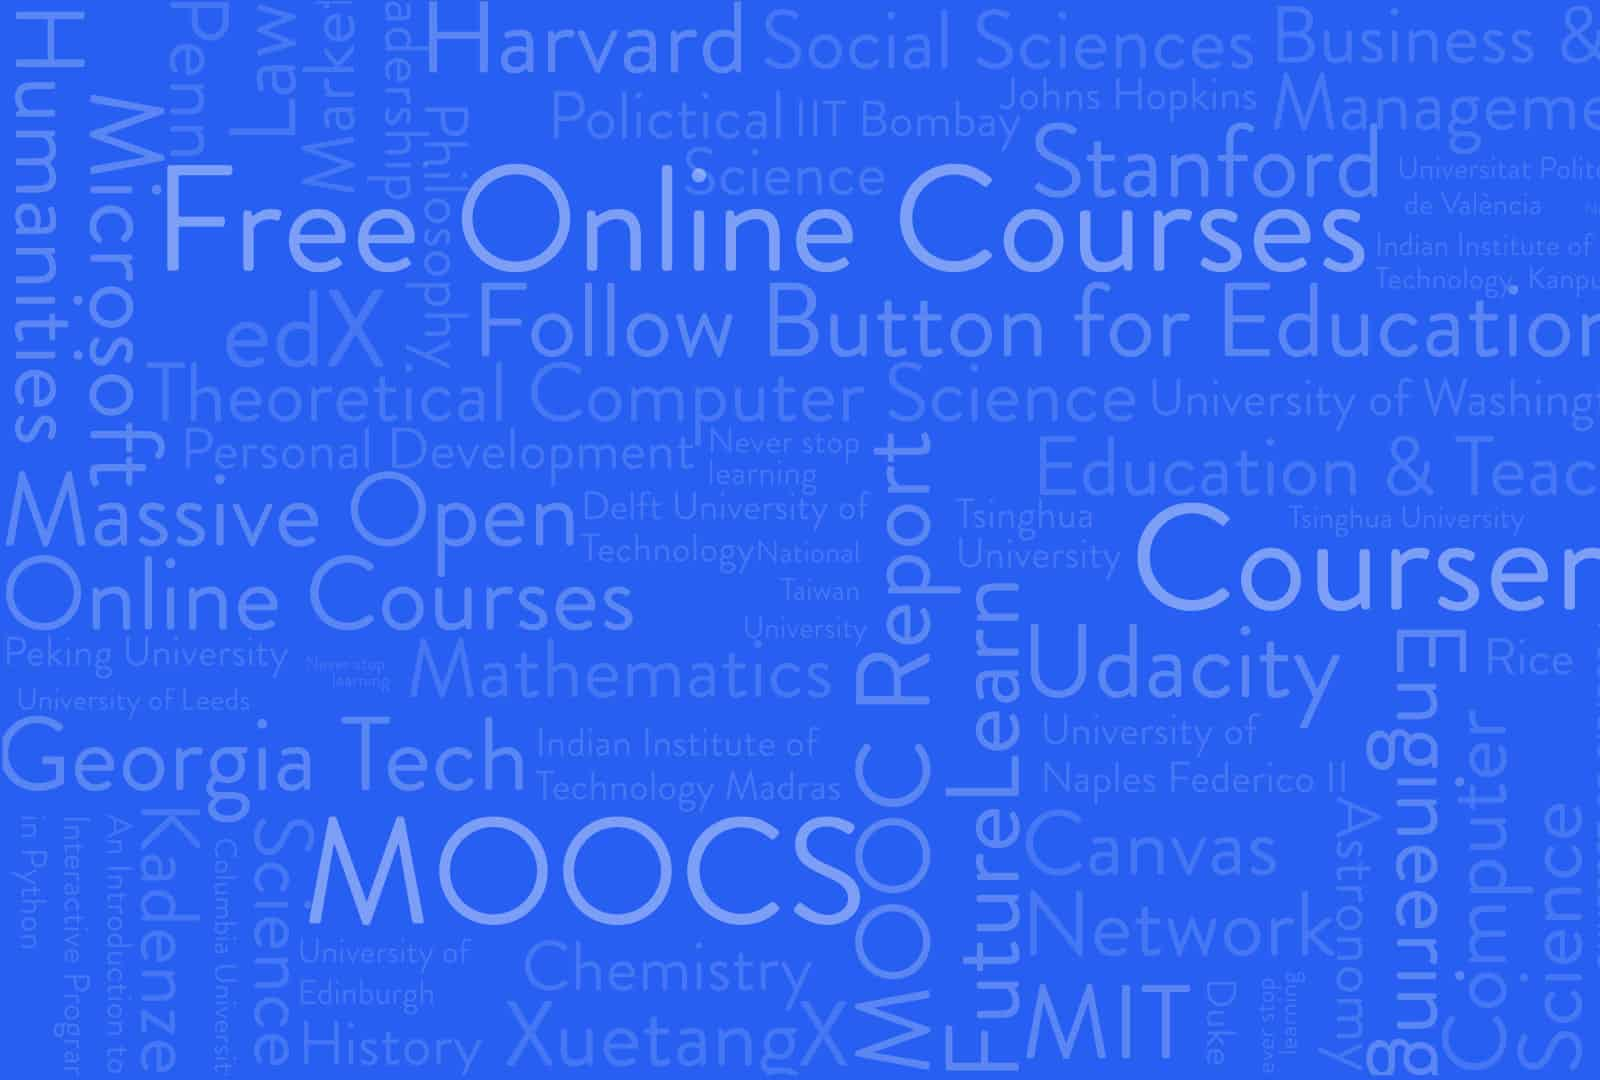 190 Universities Just Launched 600 Free Online Courses Heres The Electrical Primer Introduction To Electricity Full List Class Central